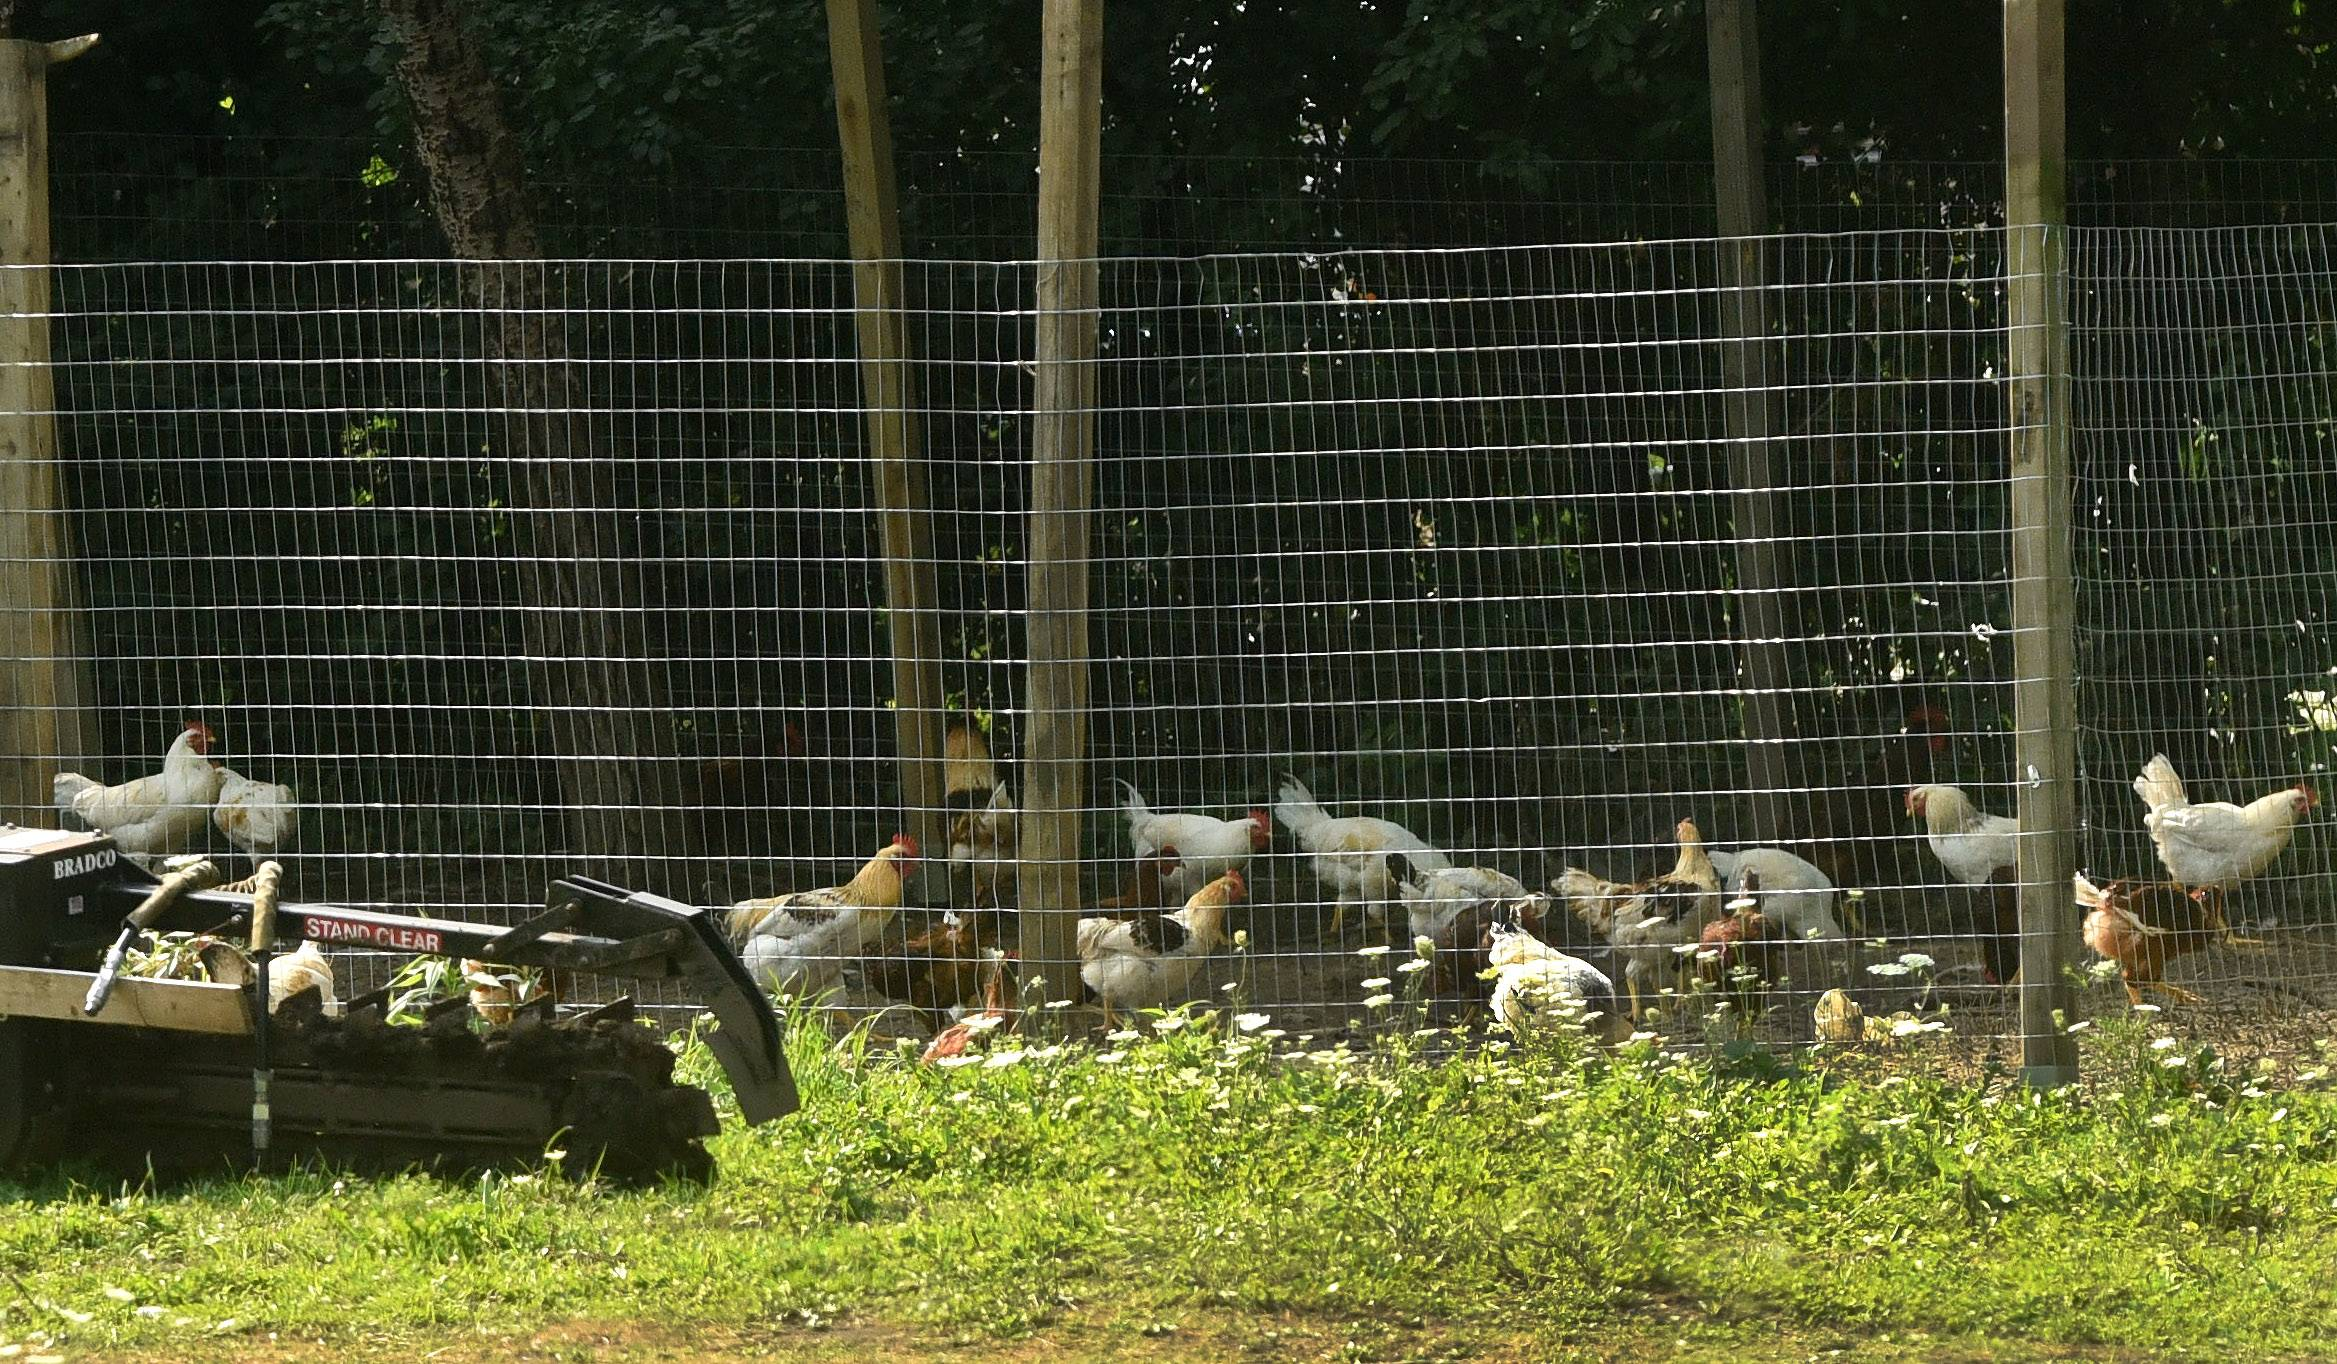 Hundreds of chickens legally roam unincorporated property at the southwest corner of Scott Road and Route 59 on North Barrington's border. Some residents oppose a plan to create a large-scale poultry farm for thousands of chickens there for egg production.